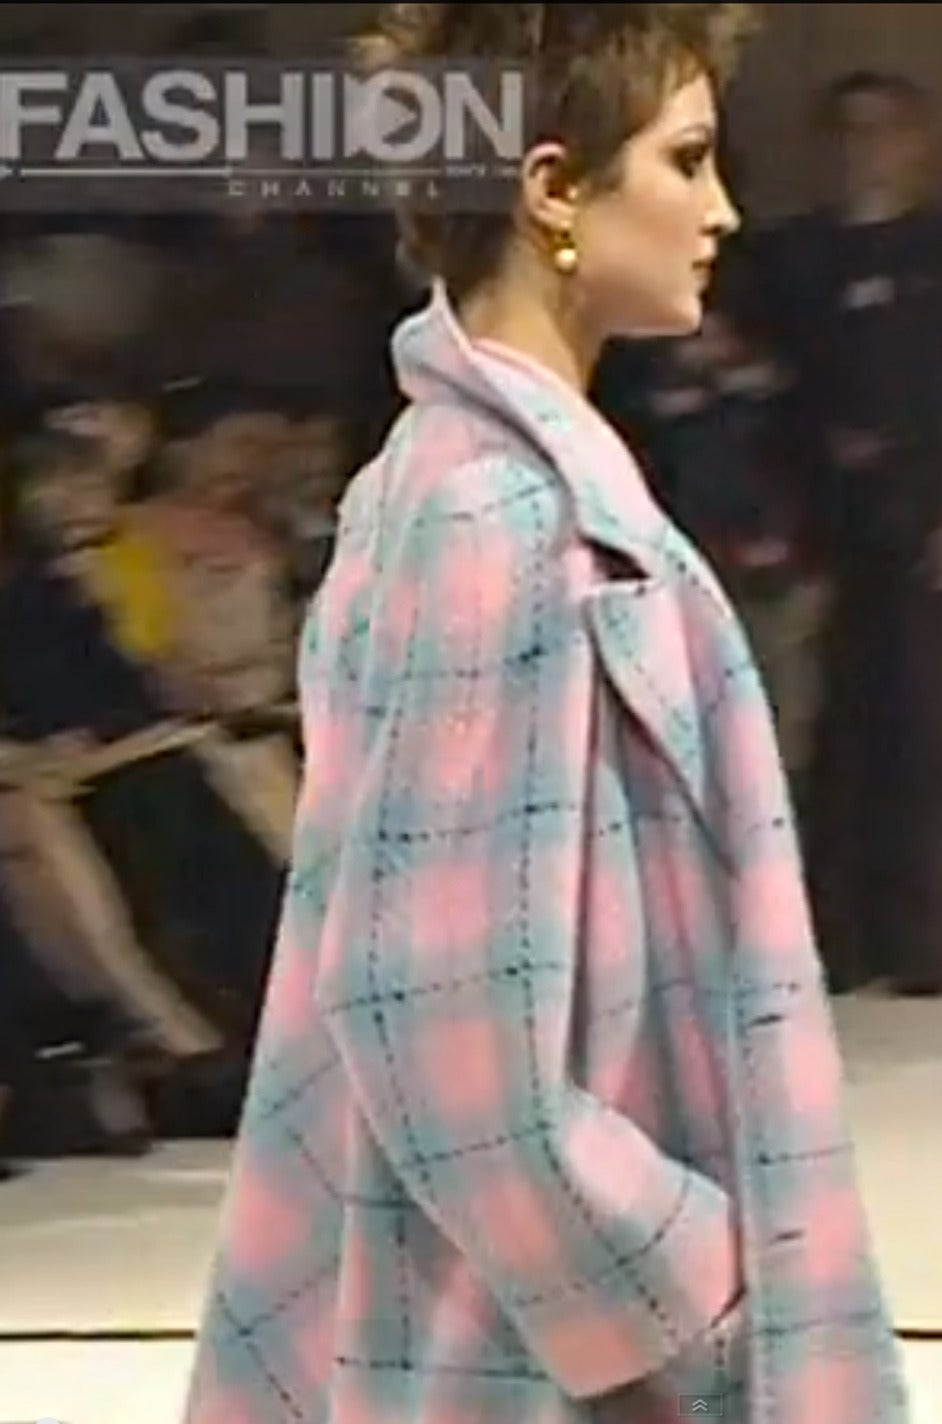 96A Pastel Runway Chanel Coat w Cabochon Buttons 10